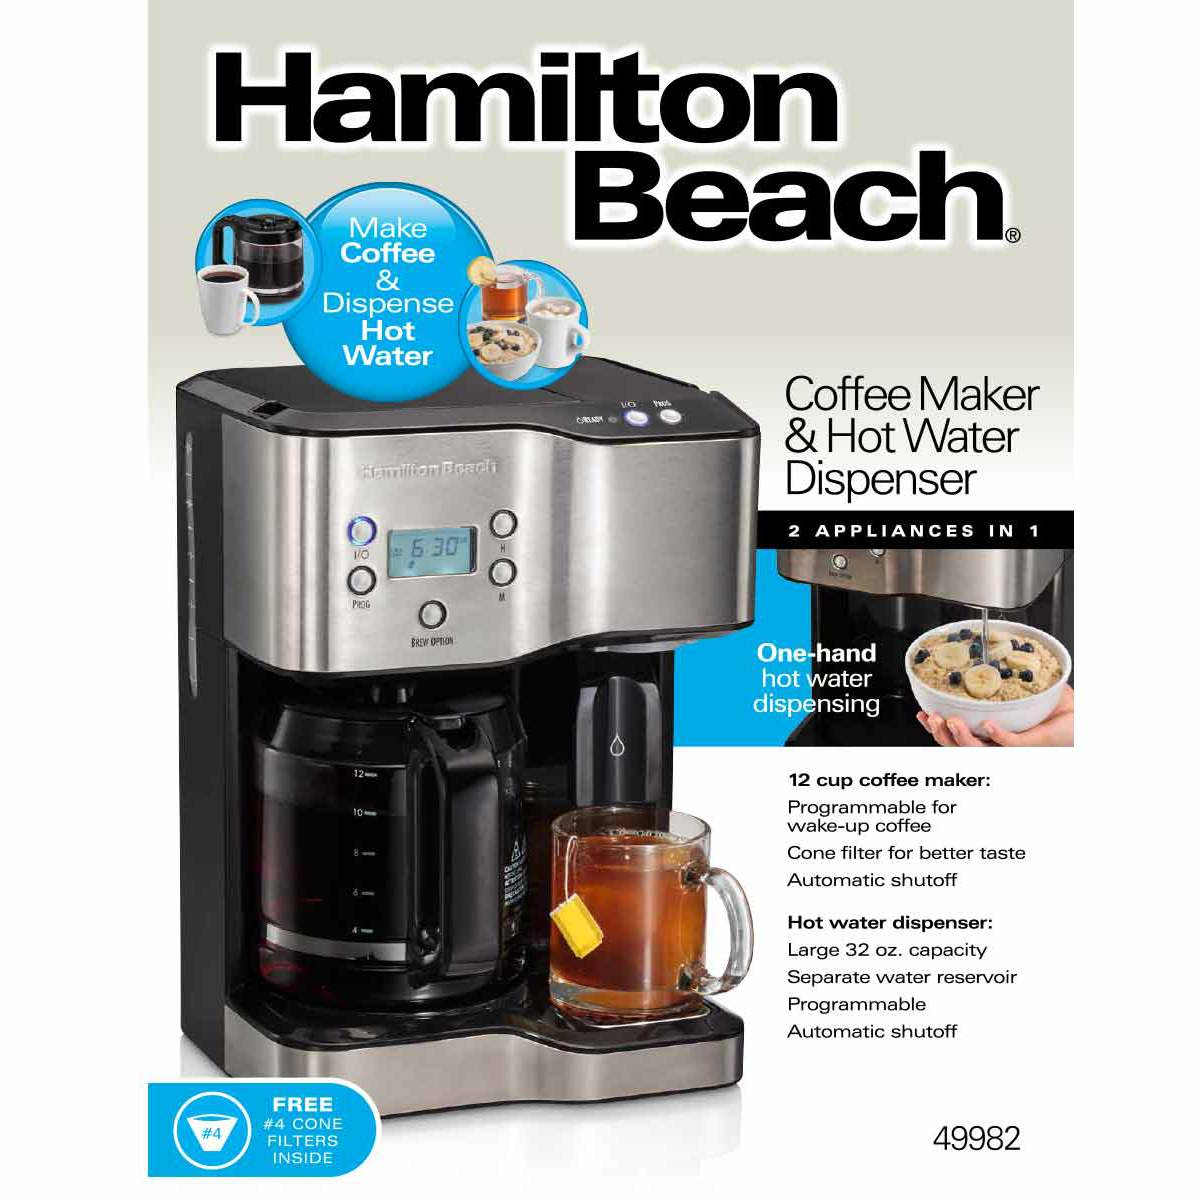 Coffee Maker With Hot Water Dispenser : Hamilton Beach Coffee Maker & Hot Water Dispenser - 49982